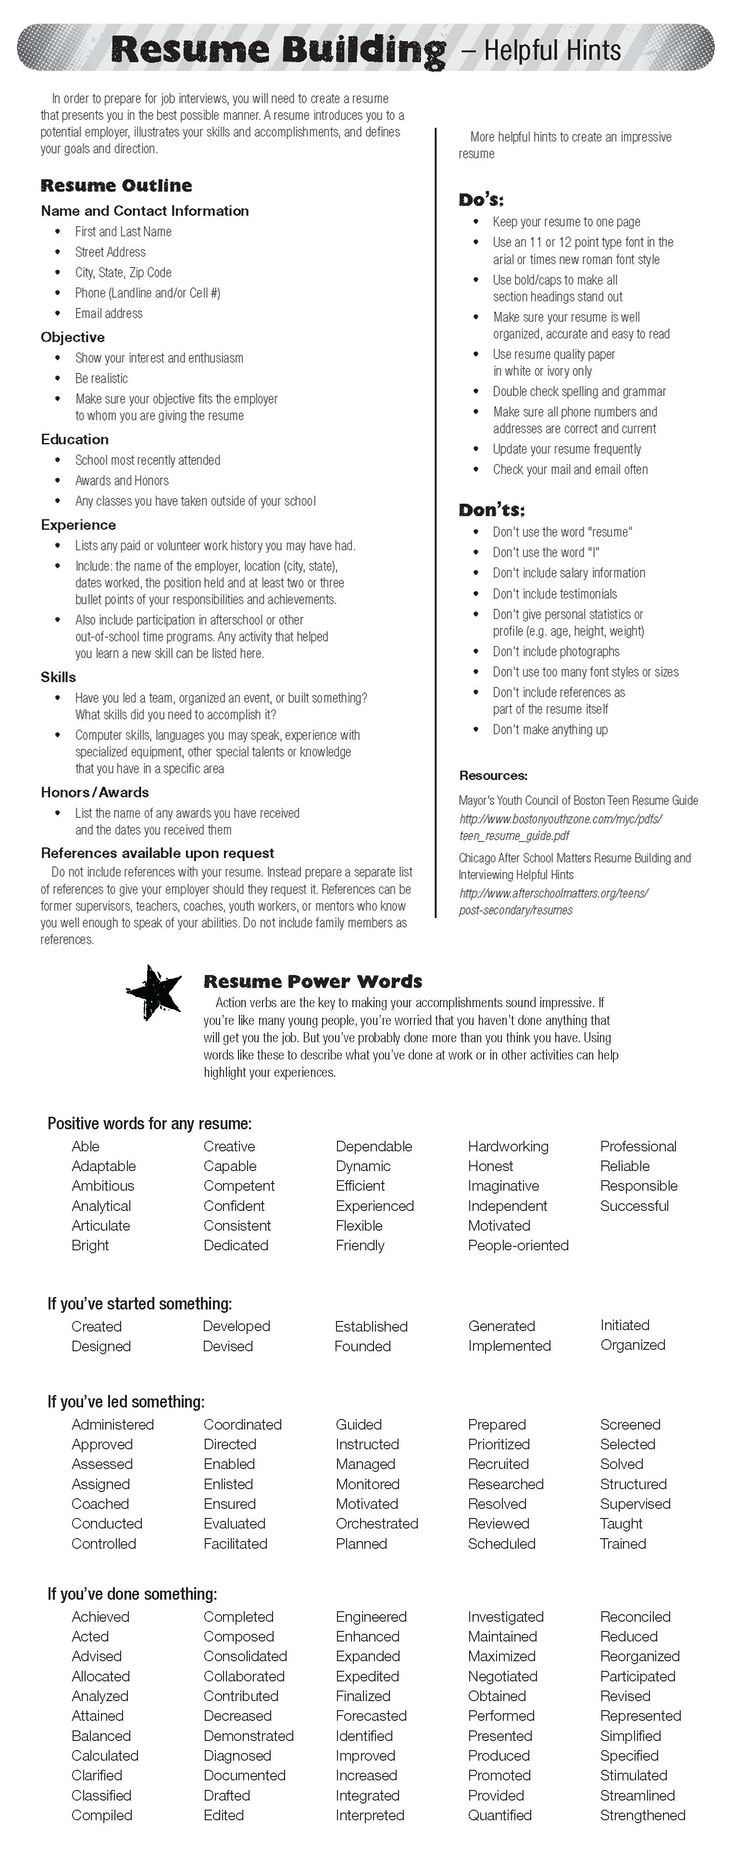 Opposenewapstandardsus  Outstanding  Ideas About Resume On Pinterest  Cv Format Resume  With Entrancing Check Out Todays Resume Building Tips Resume Resumepowerwords With Lovely A Good Resume Summary Also Resume Financial Analyst In Addition Bank Teller Job Description Resume And Receptionist Job Resume As Well As Skills Section Resume Example Additionally Department Manager Resume From Pinterestcom With Opposenewapstandardsus  Entrancing  Ideas About Resume On Pinterest  Cv Format Resume  With Lovely Check Out Todays Resume Building Tips Resume Resumepowerwords And Outstanding A Good Resume Summary Also Resume Financial Analyst In Addition Bank Teller Job Description Resume From Pinterestcom